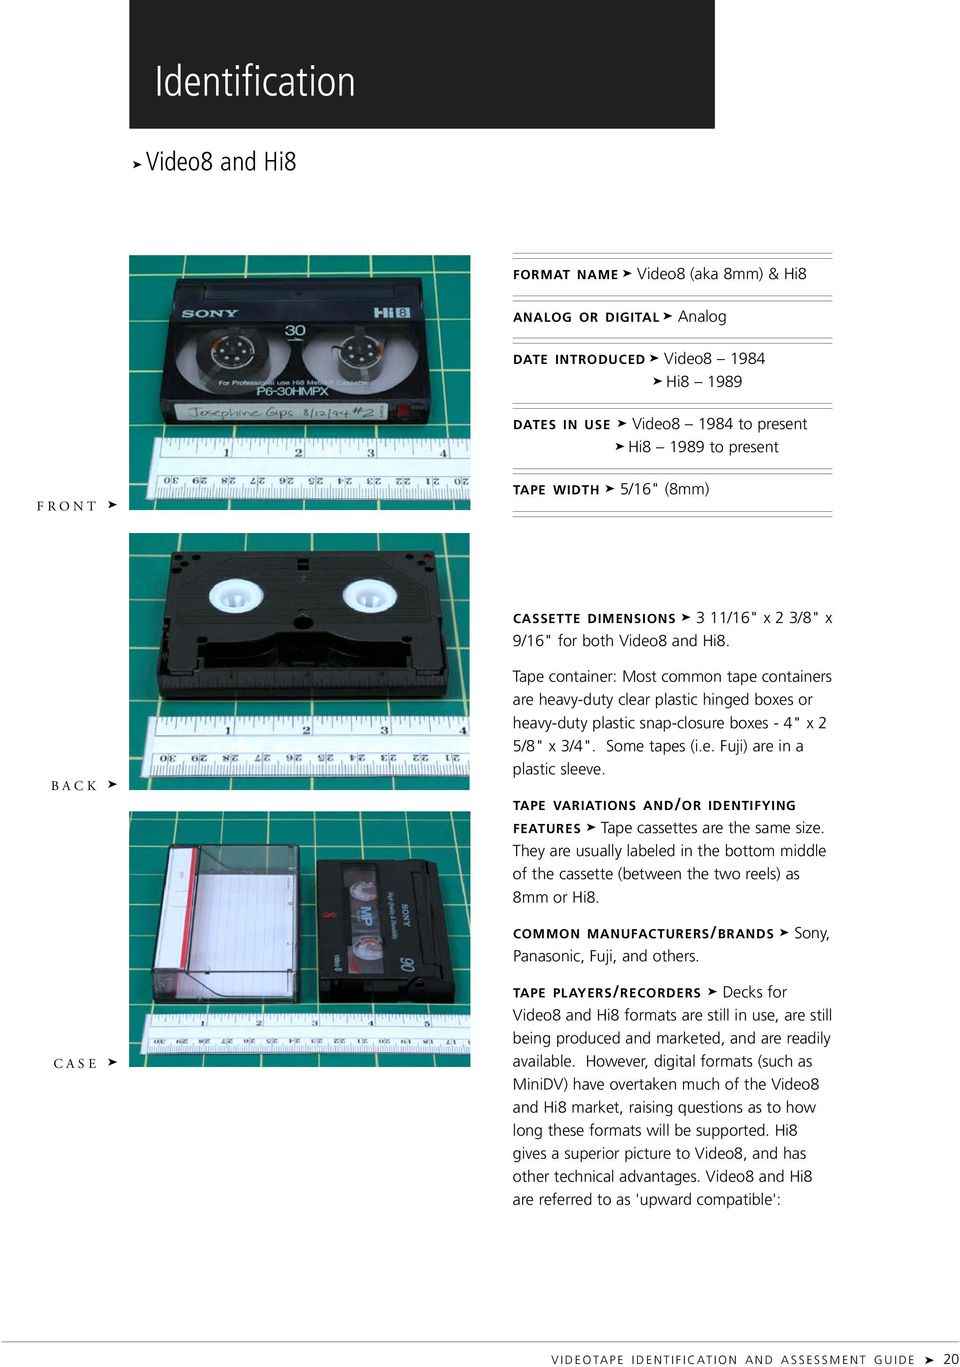 "Tape container: Most common tape containers are heavy-duty clear plastic hinged boxes or heavy-duty plastic snap-closure boxes - 4"" x 2 5/8"" x 3/4"". Some tapes (i.e. Fuji) are in a plastic sleeve."